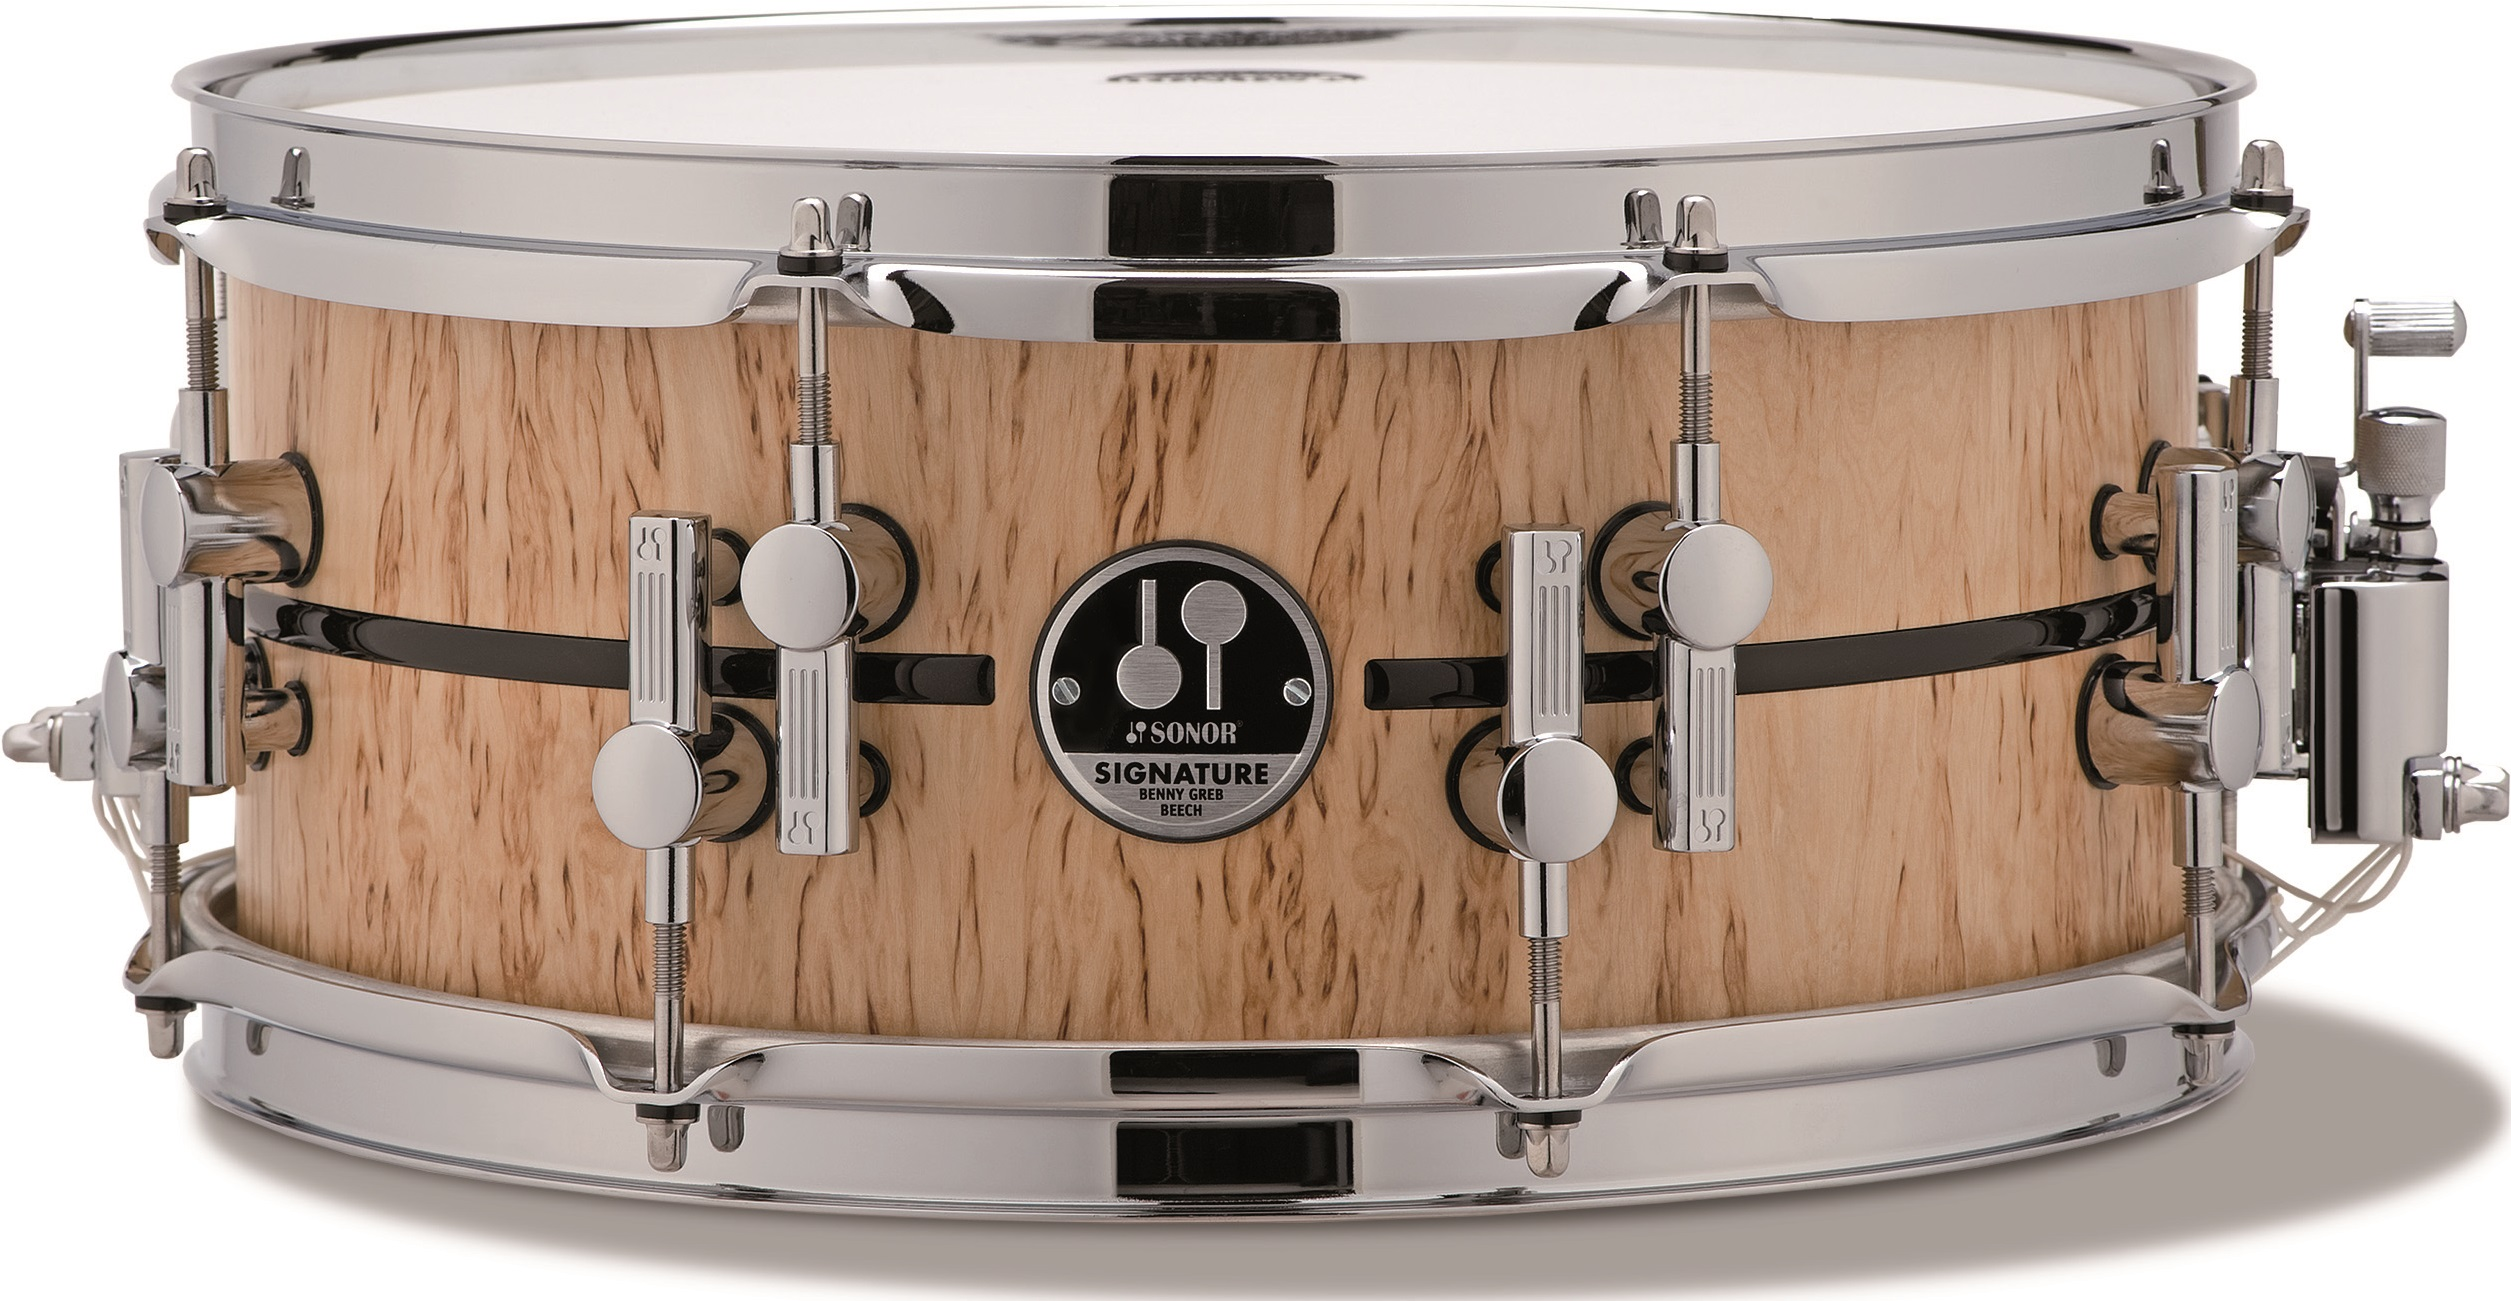 "Sonor 13"" x 5,75"" Signature Series Benny Greb"